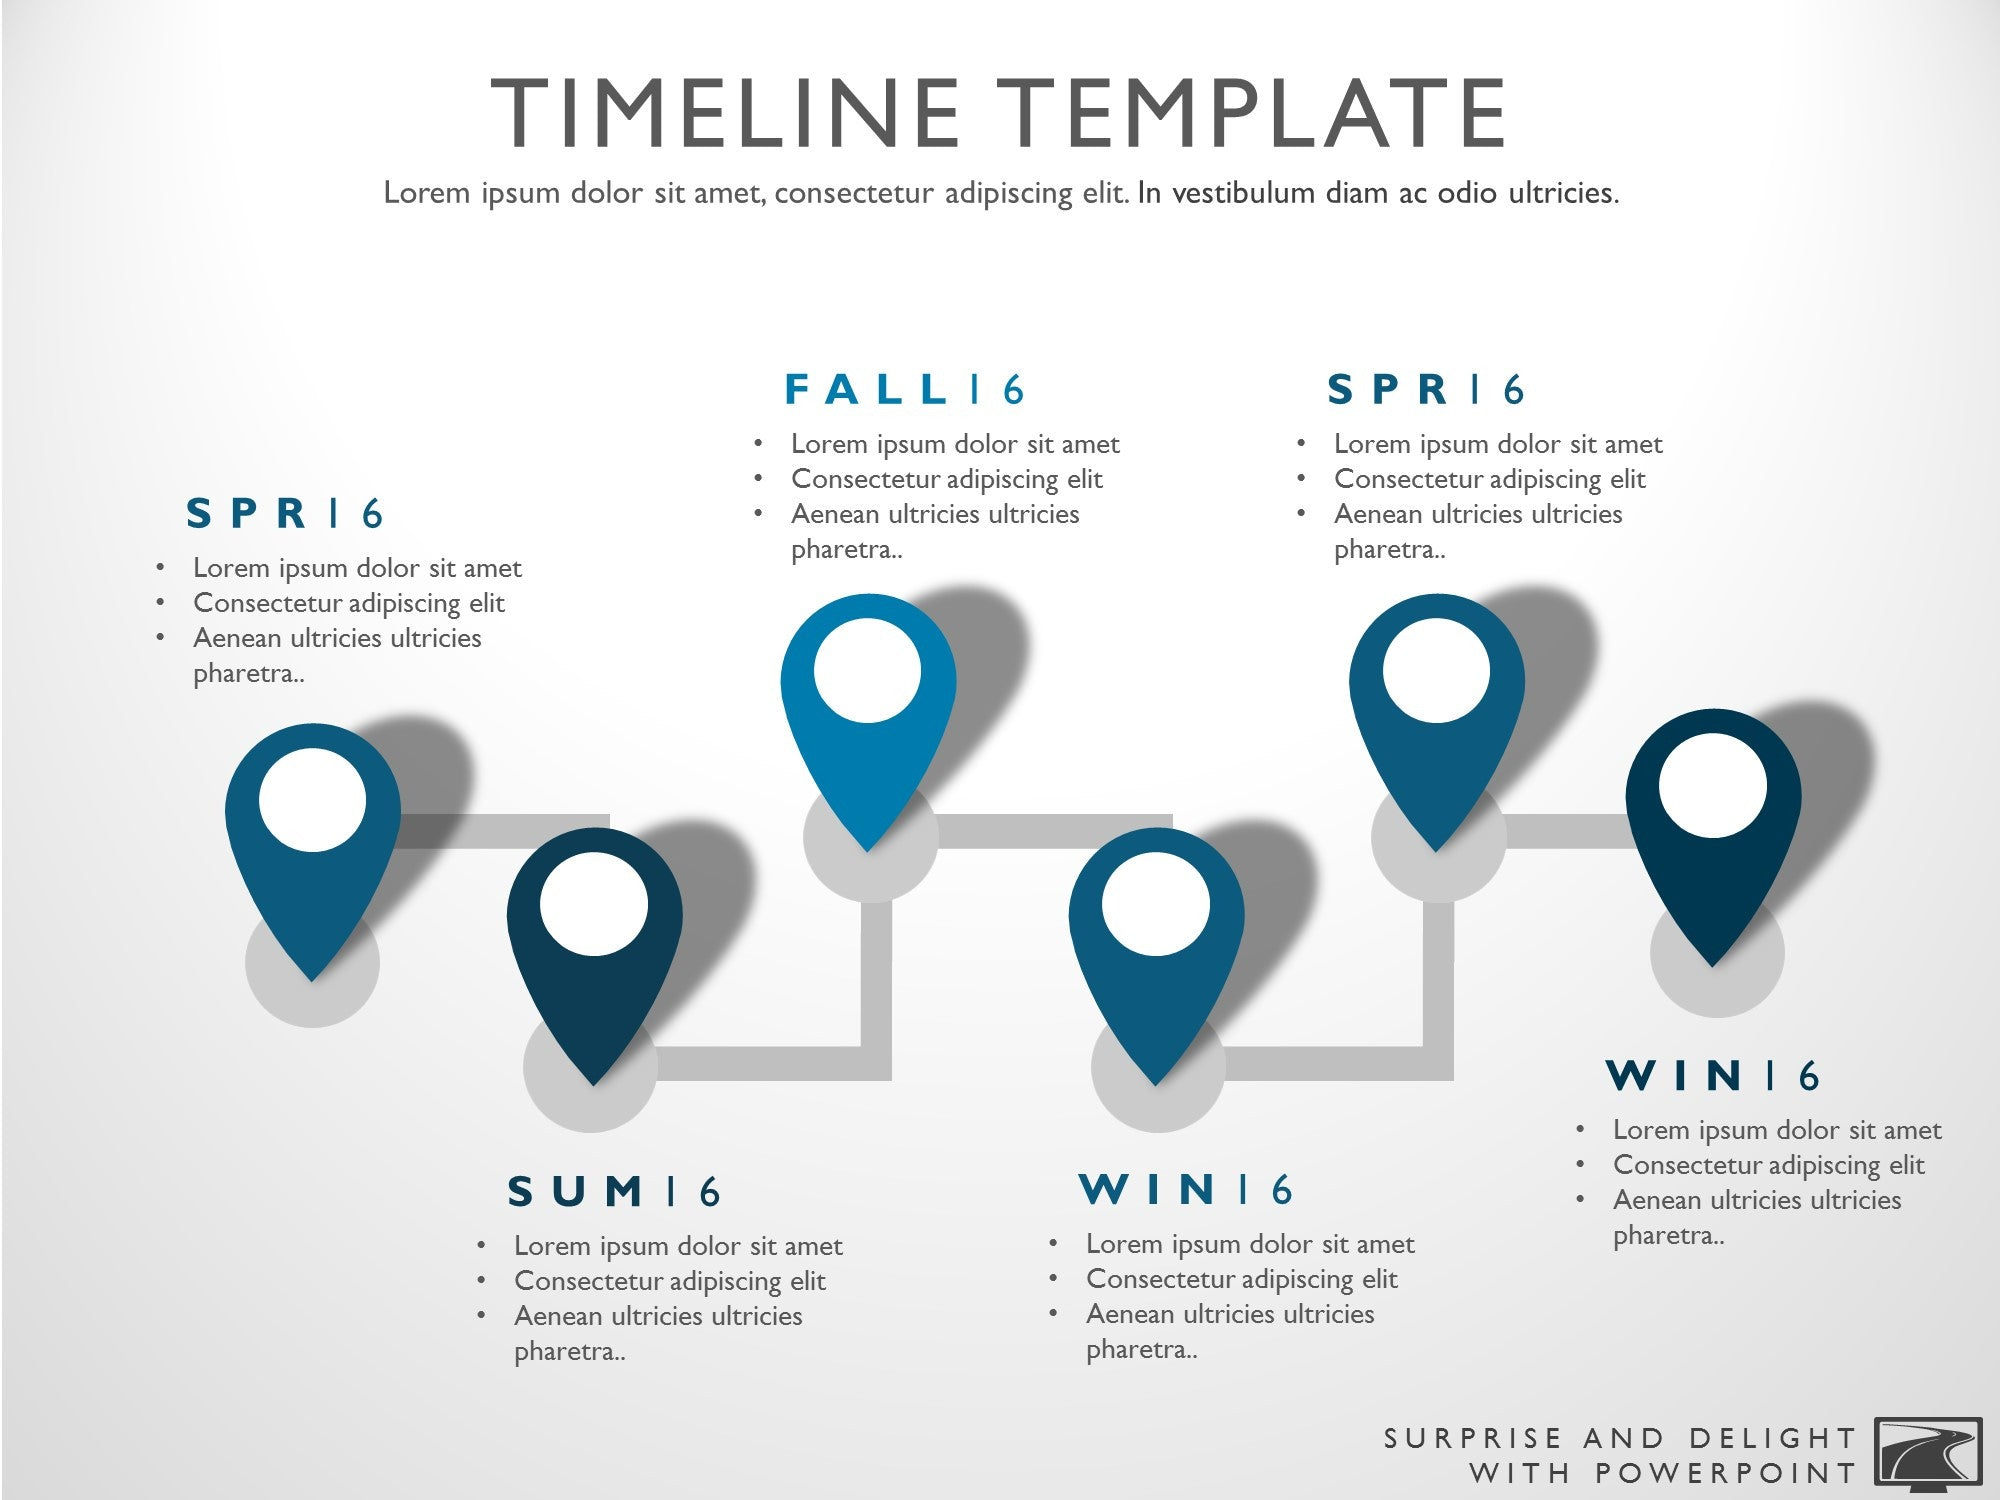 Six Phase Powerpoint Timeline Graphic - Timeline graphic template